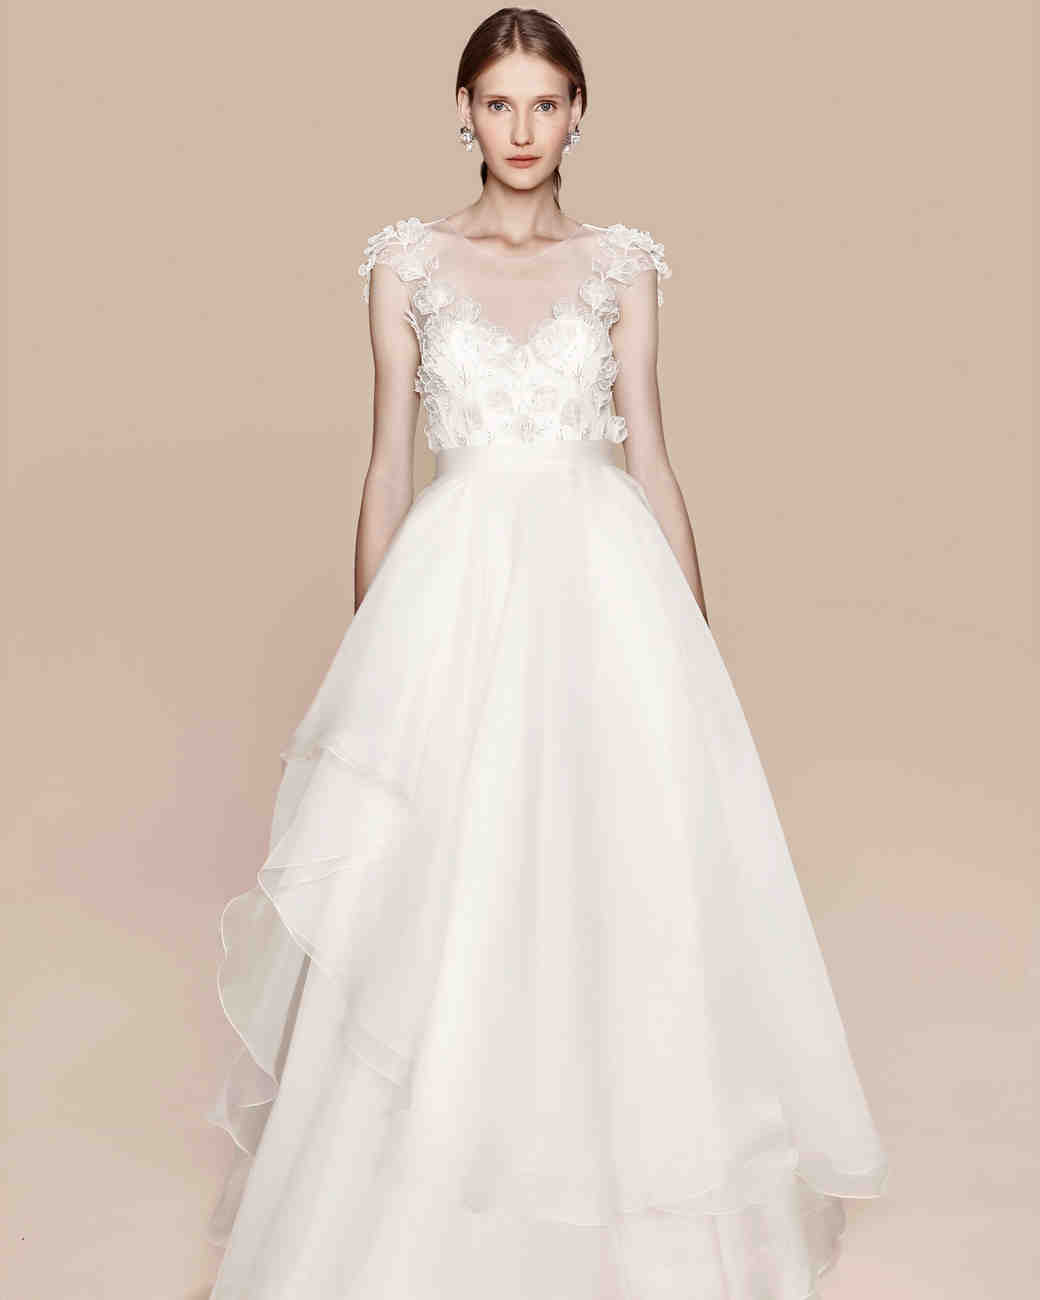 Marchesa Spring 2017 Wedding Dress Collection: Exclusive First Look: Marchesa Notte Fall 2017 Wedding